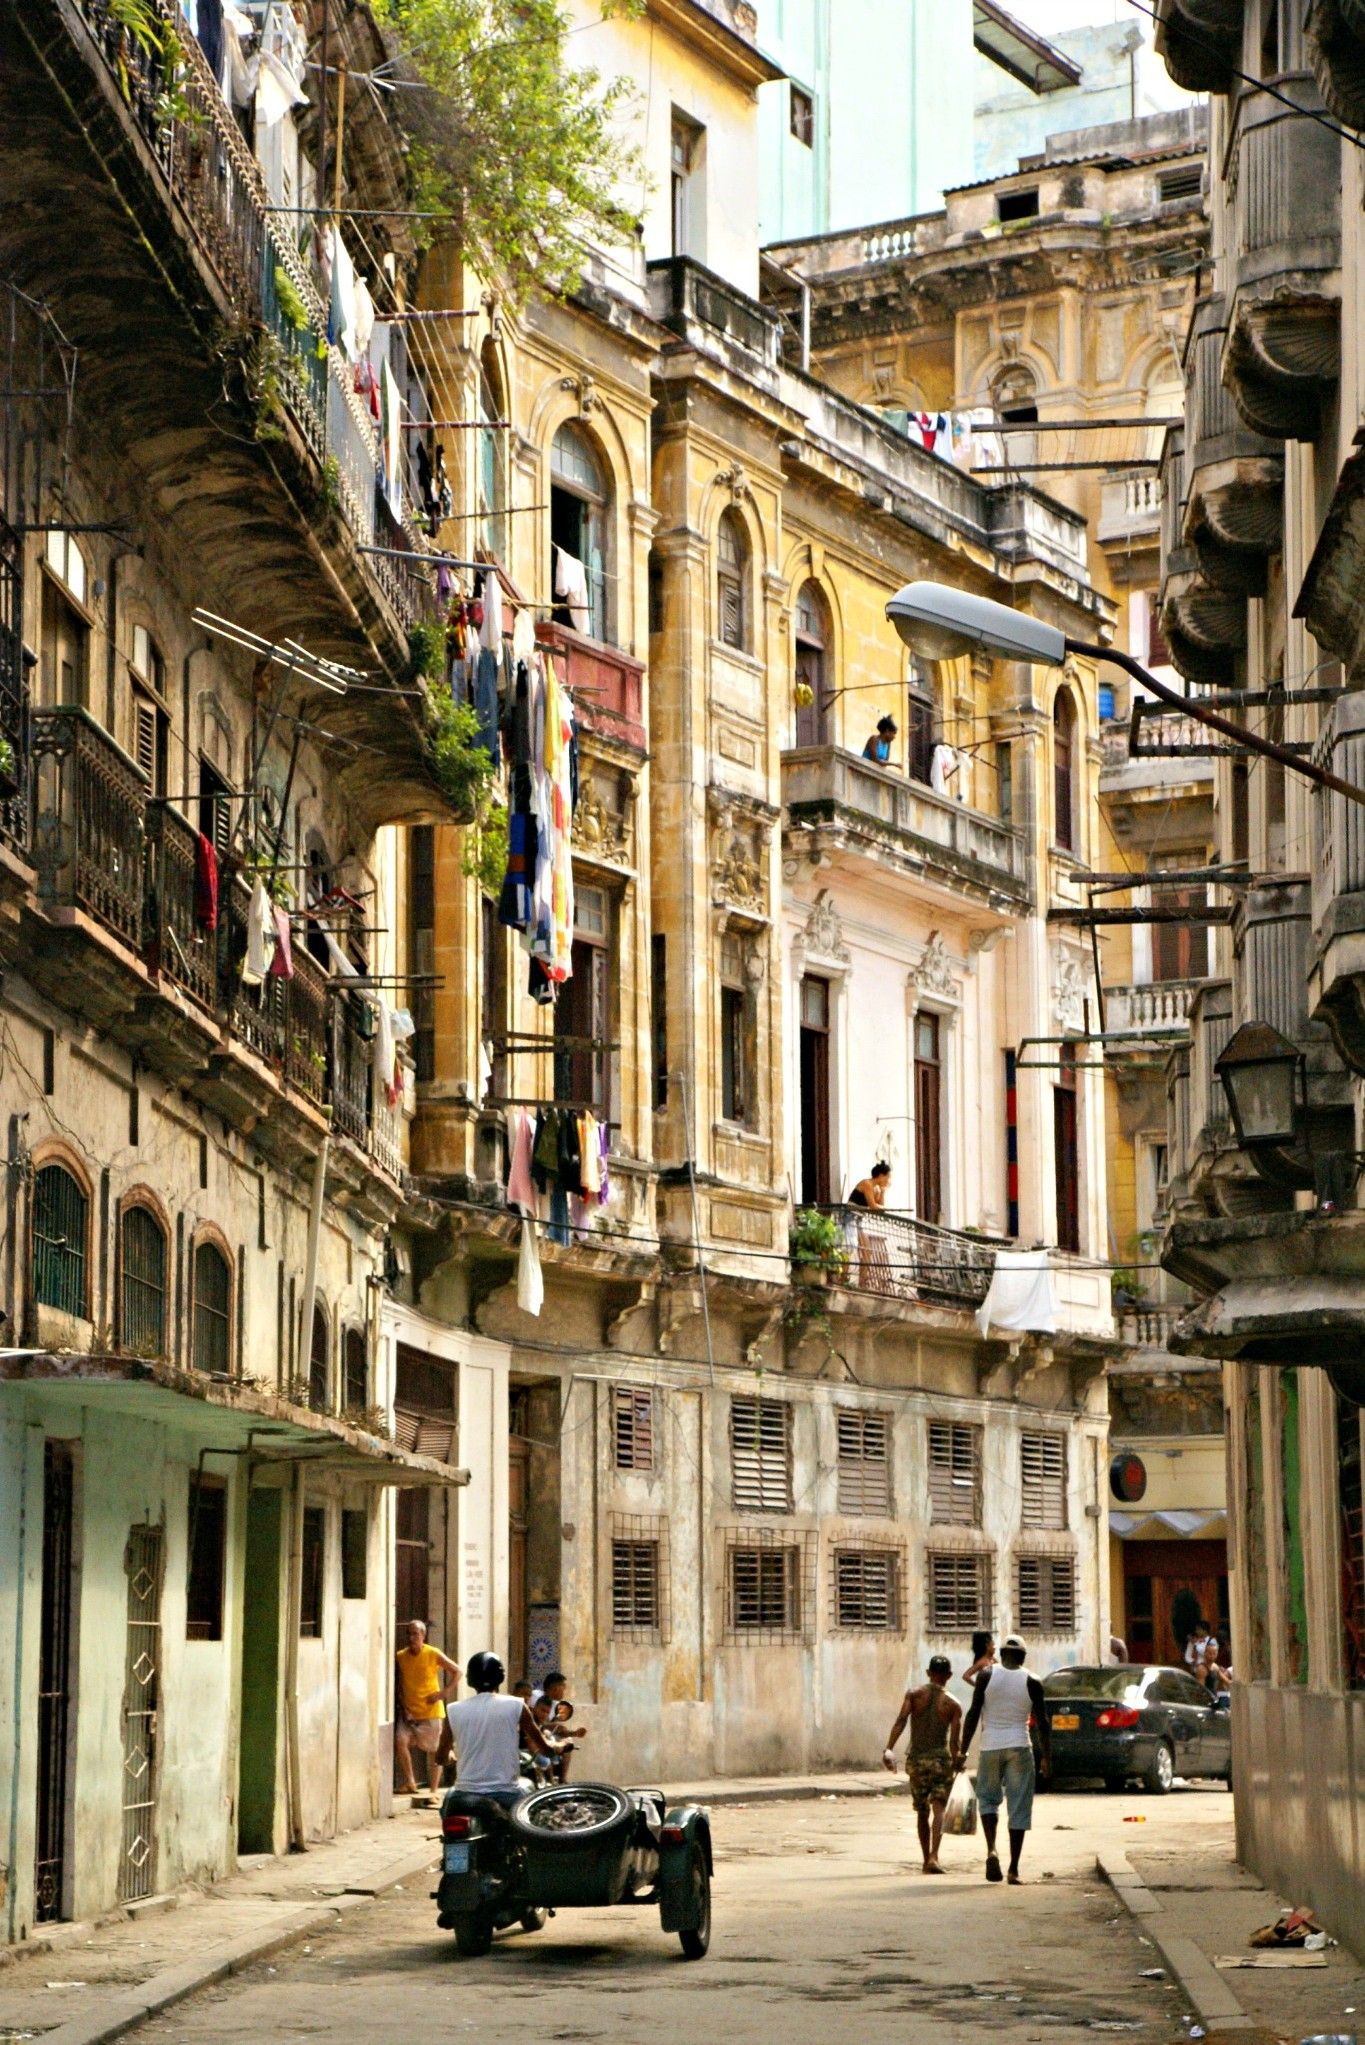 The beautiful crumbling buildings of Havana. Photo by Ovidiu Balaj